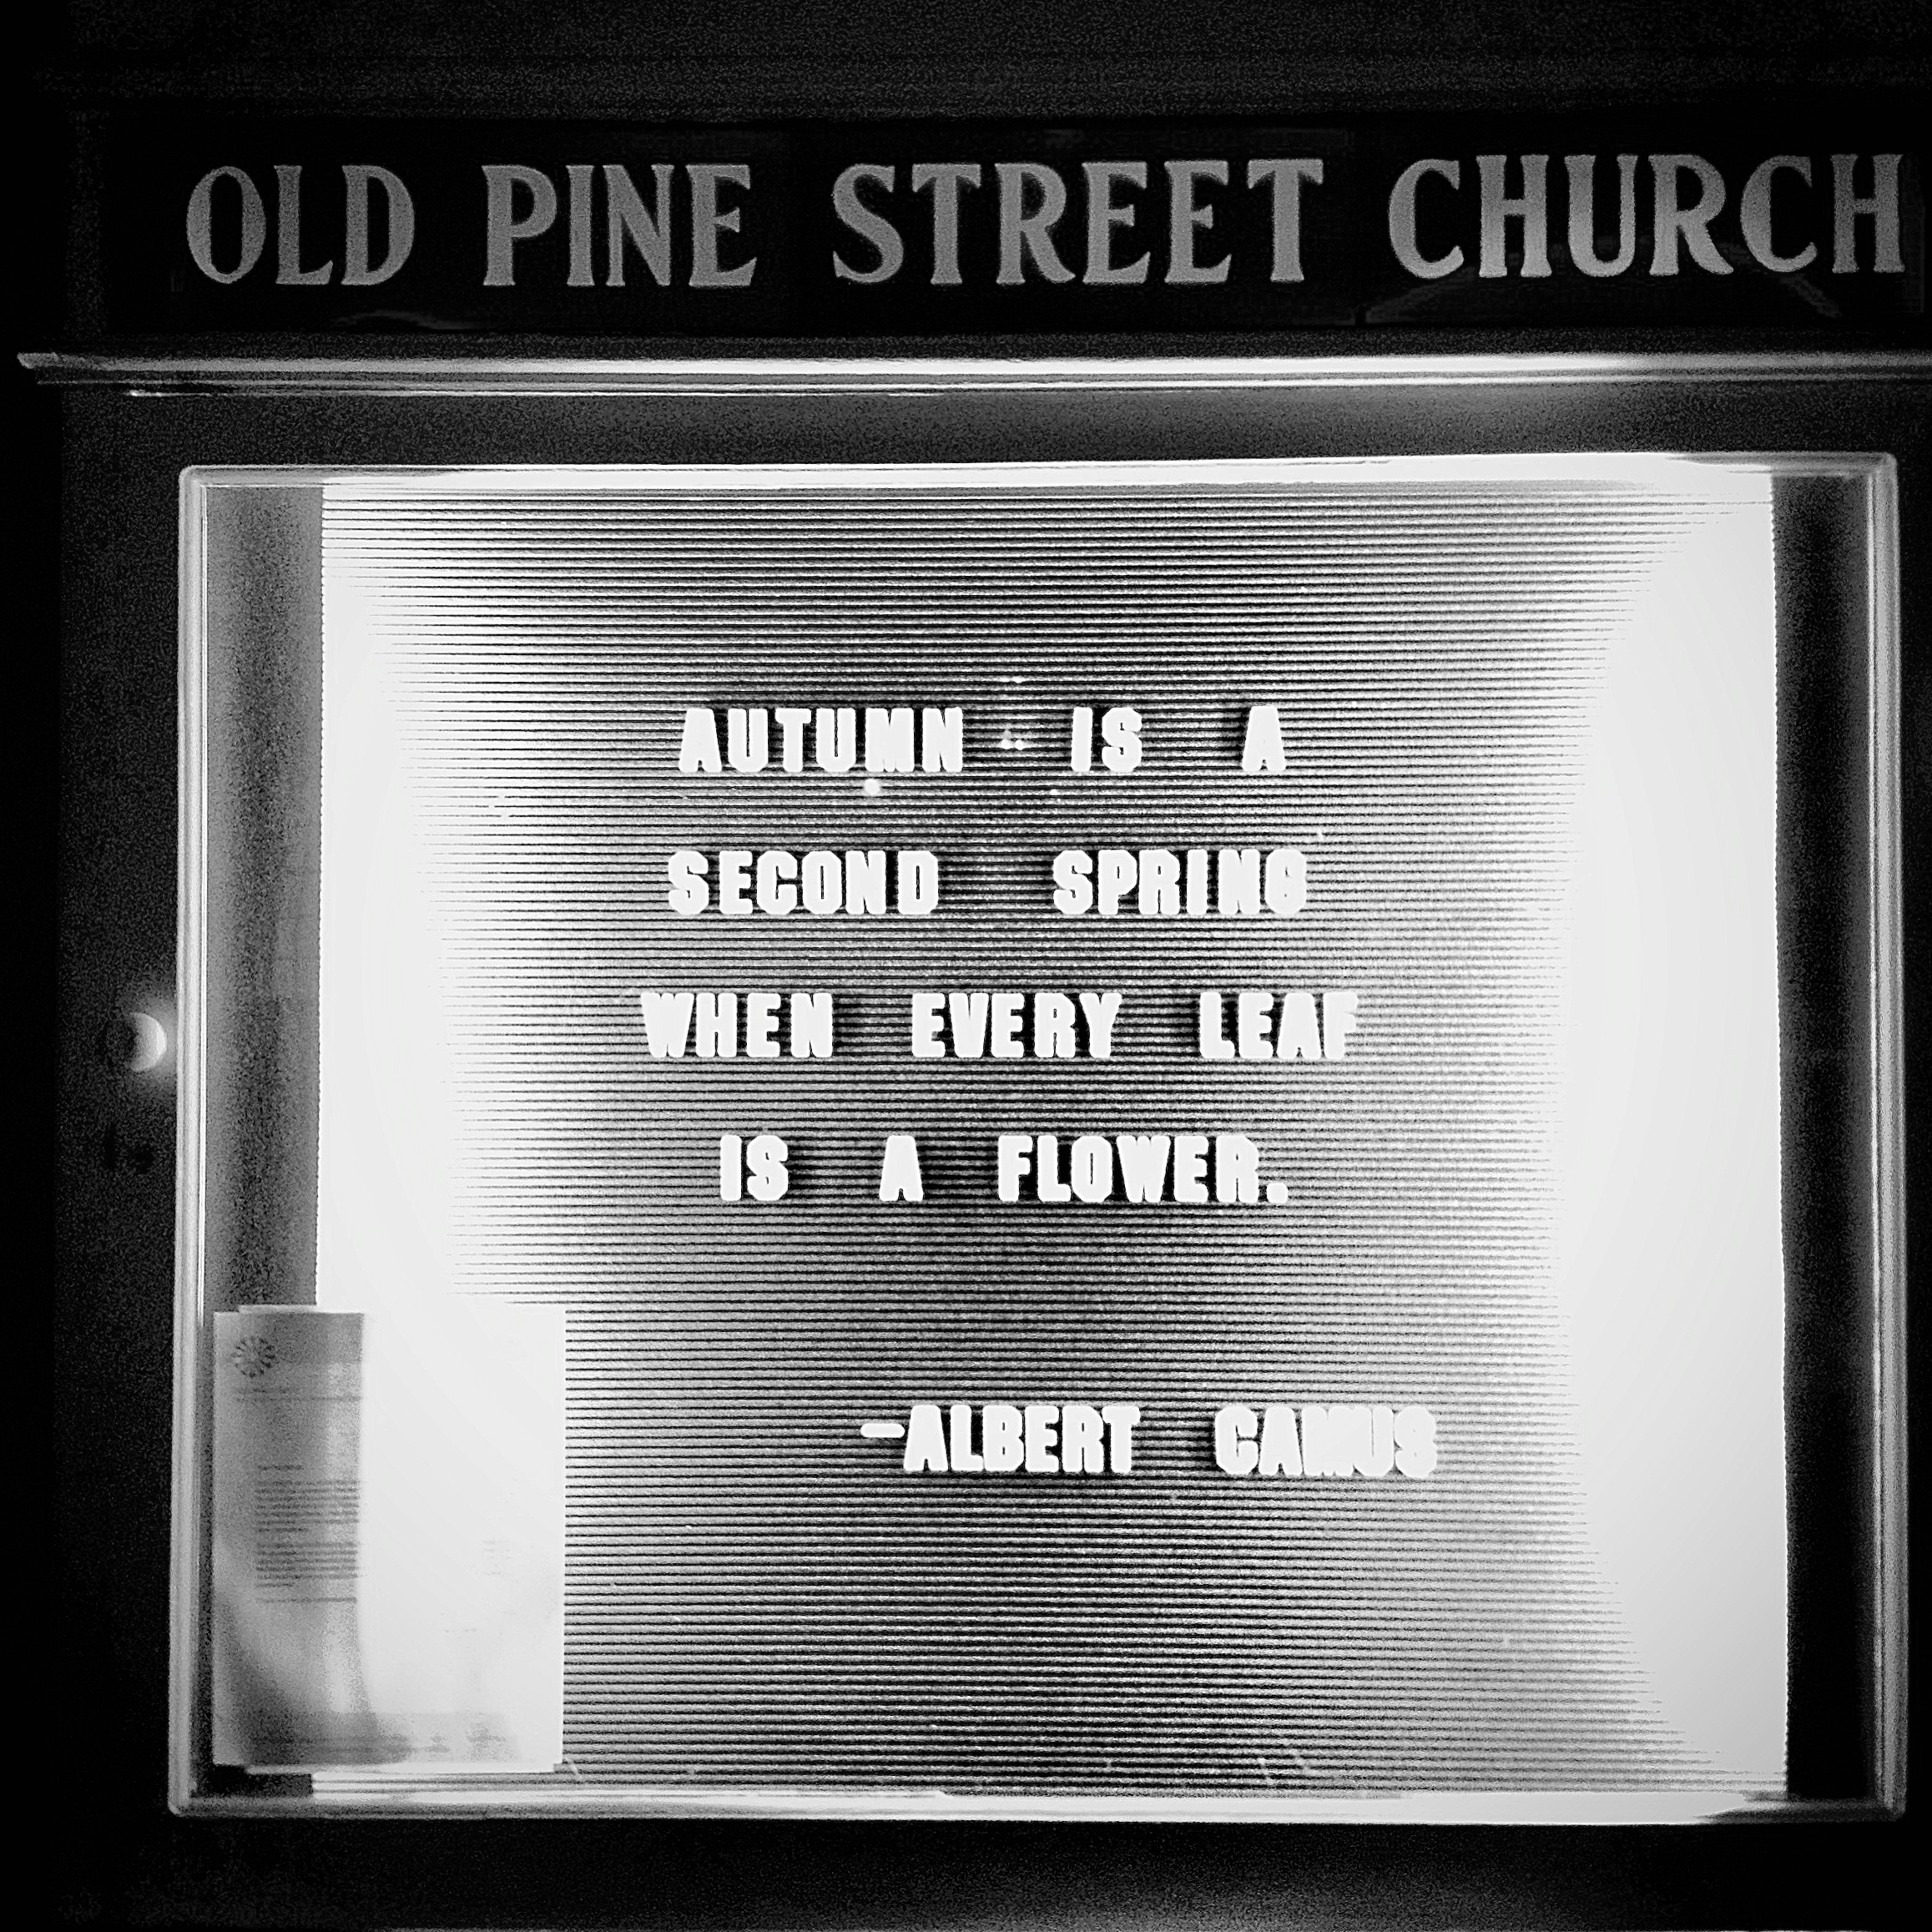 Autumn is a second spring when every leaf is a flower. - Albert Camus, Old Pine Street Church, October 2013